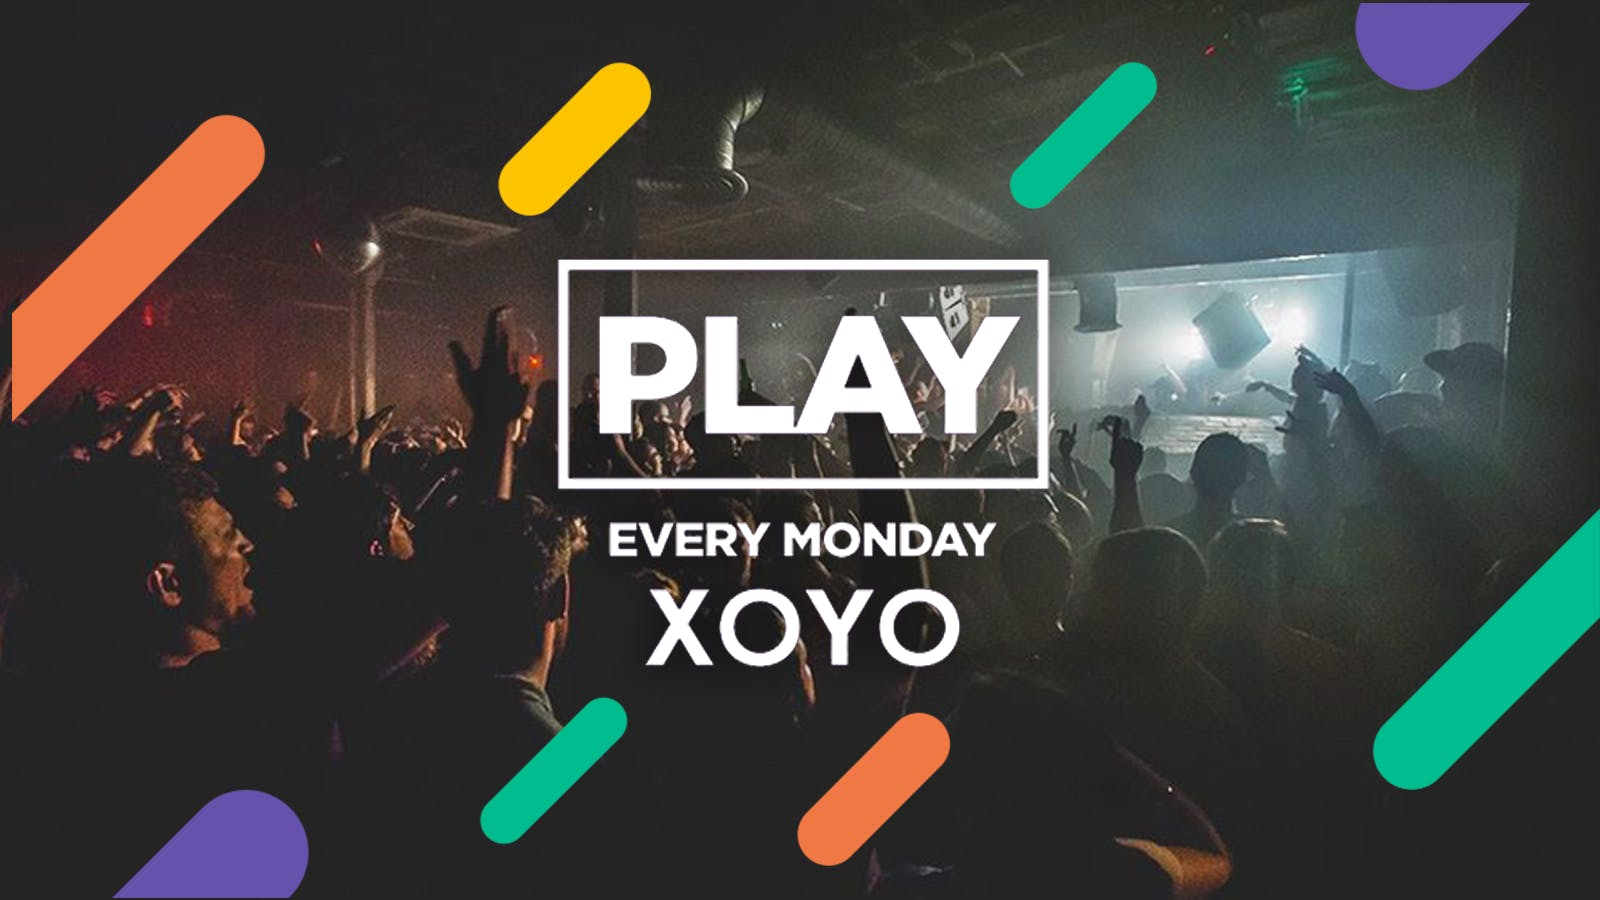 Play London Every Monday at XOYO